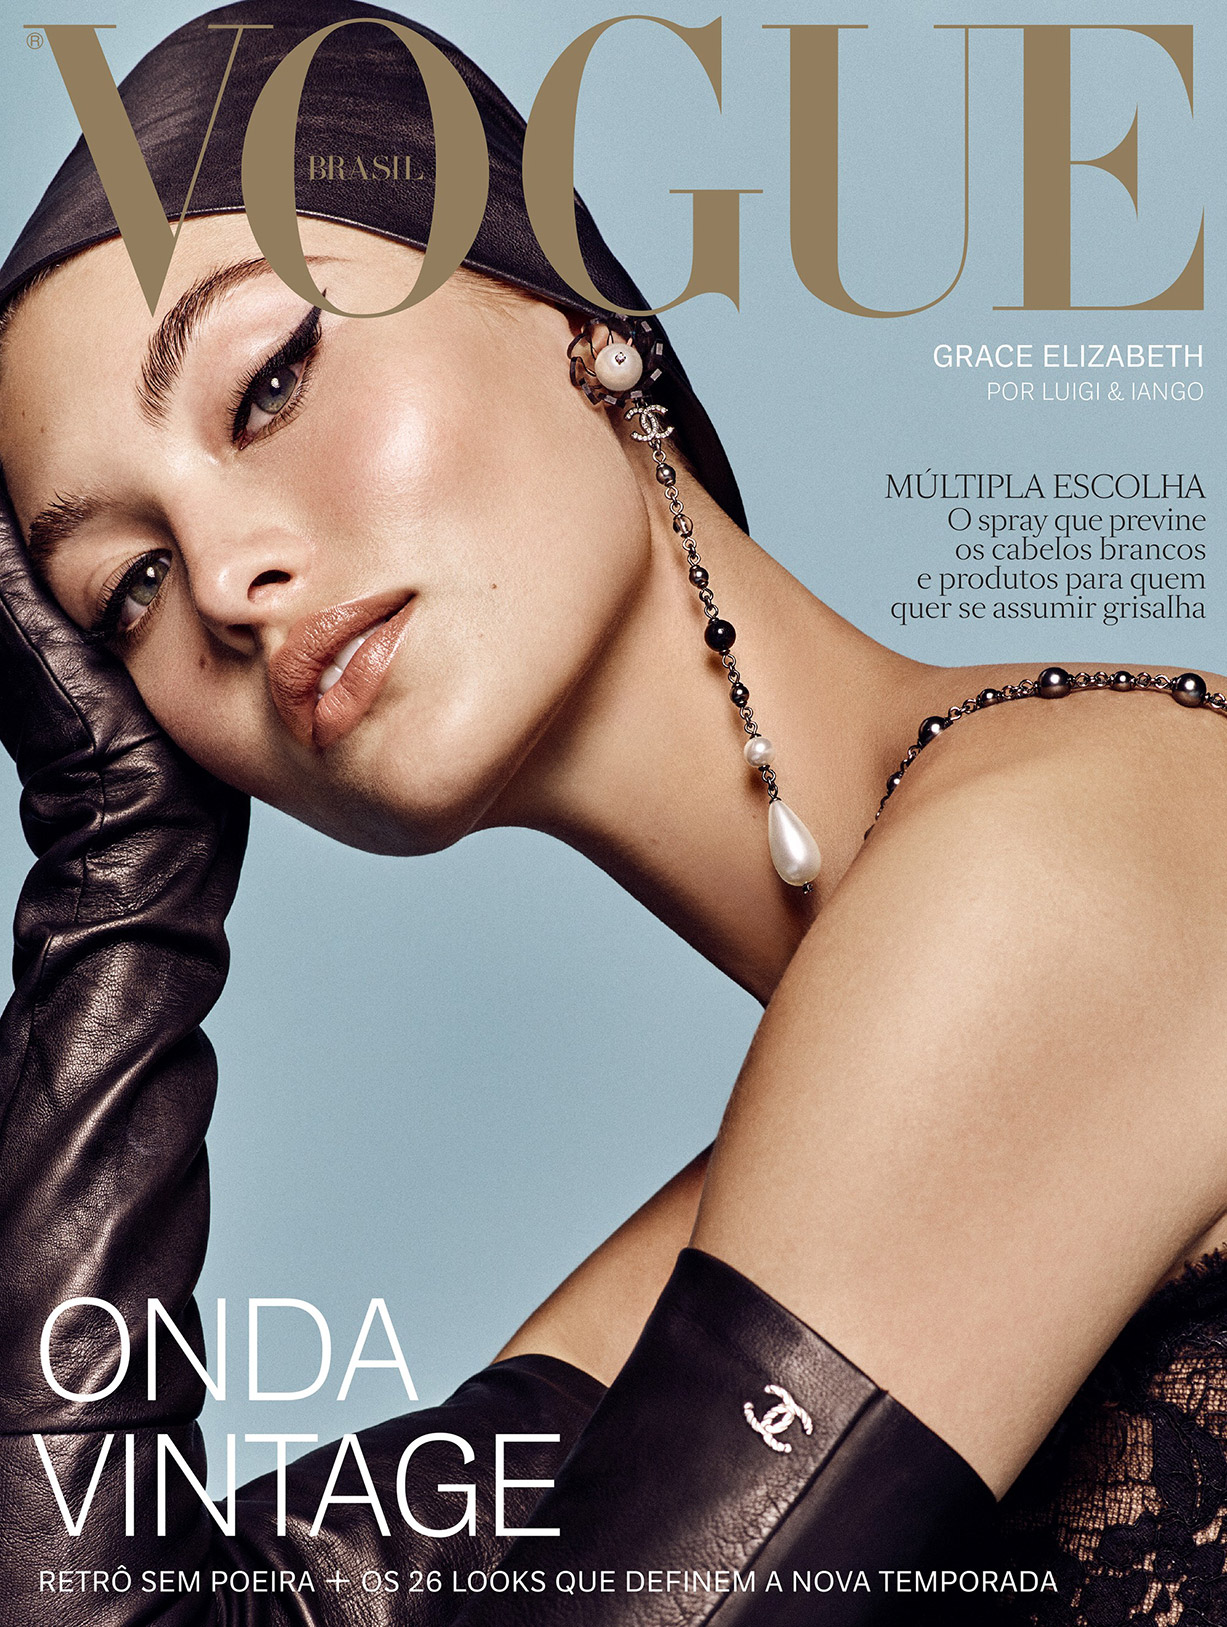 Grace Elizabeth by Luigi Murenu and Iango Henzi - Vogue Brazil august 2018